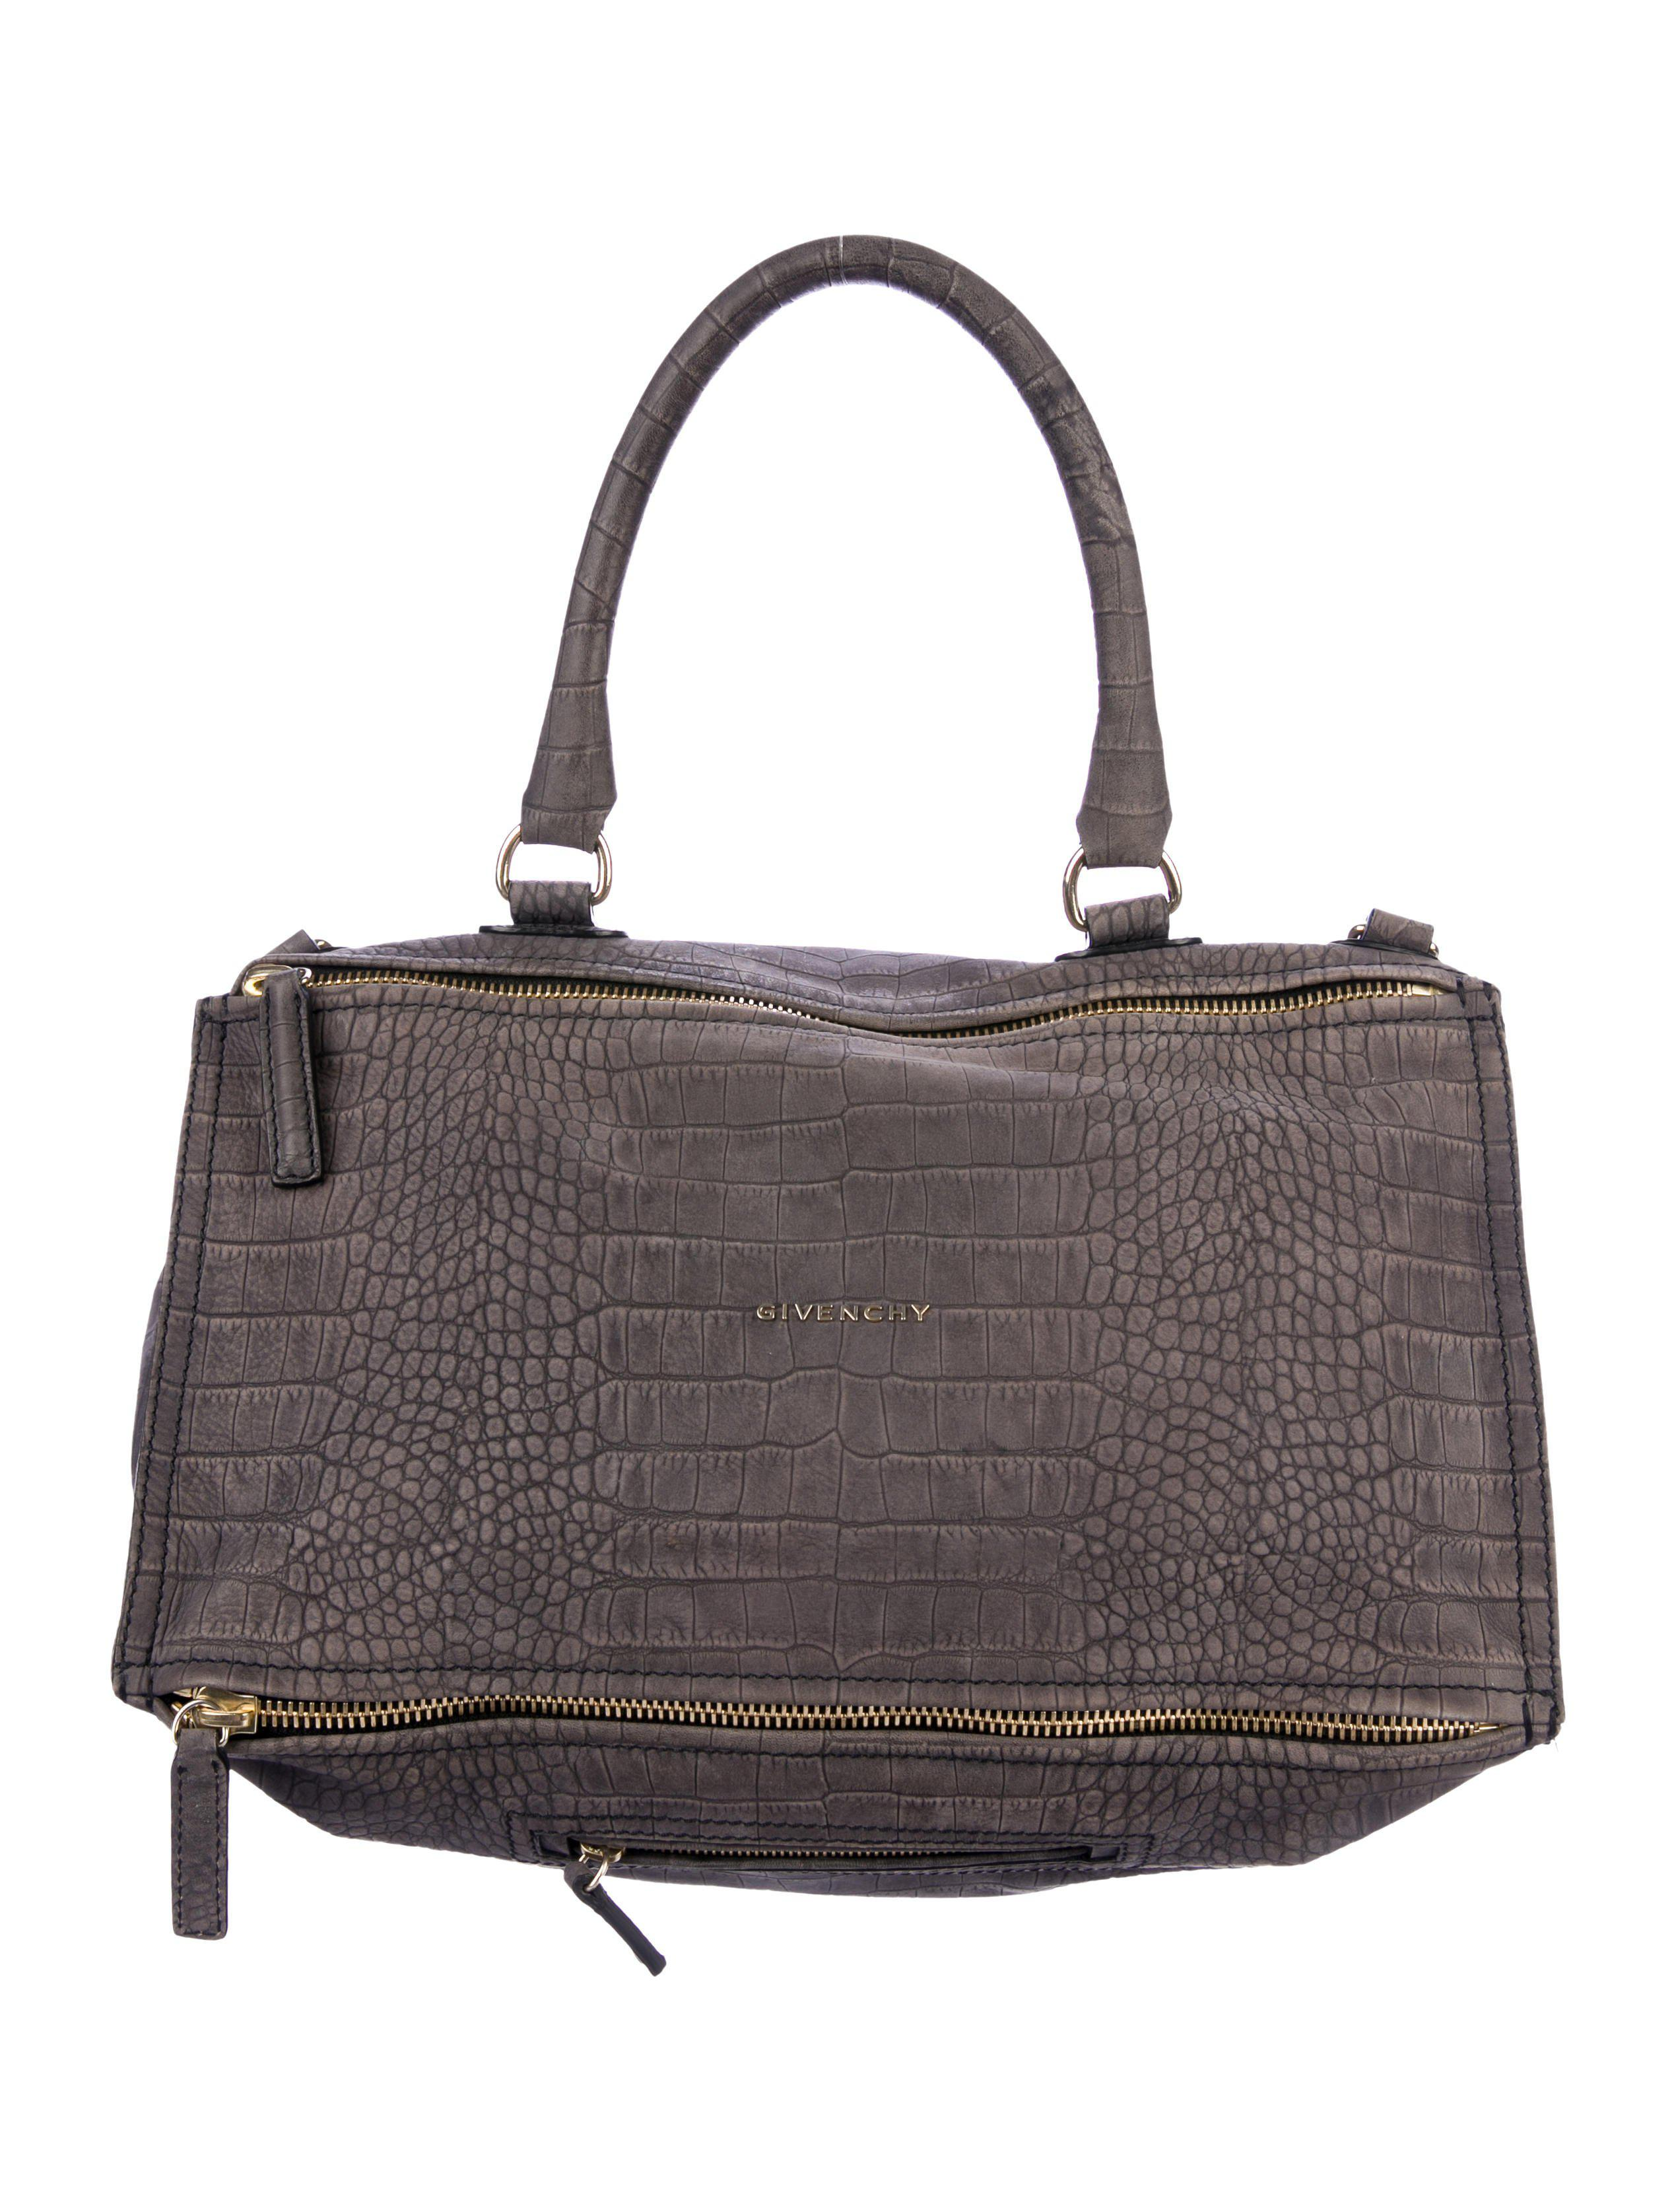 6c4e9cb4ba Lyst - Givenchy Embossed Large Pandora Satchel Gold in Metallic